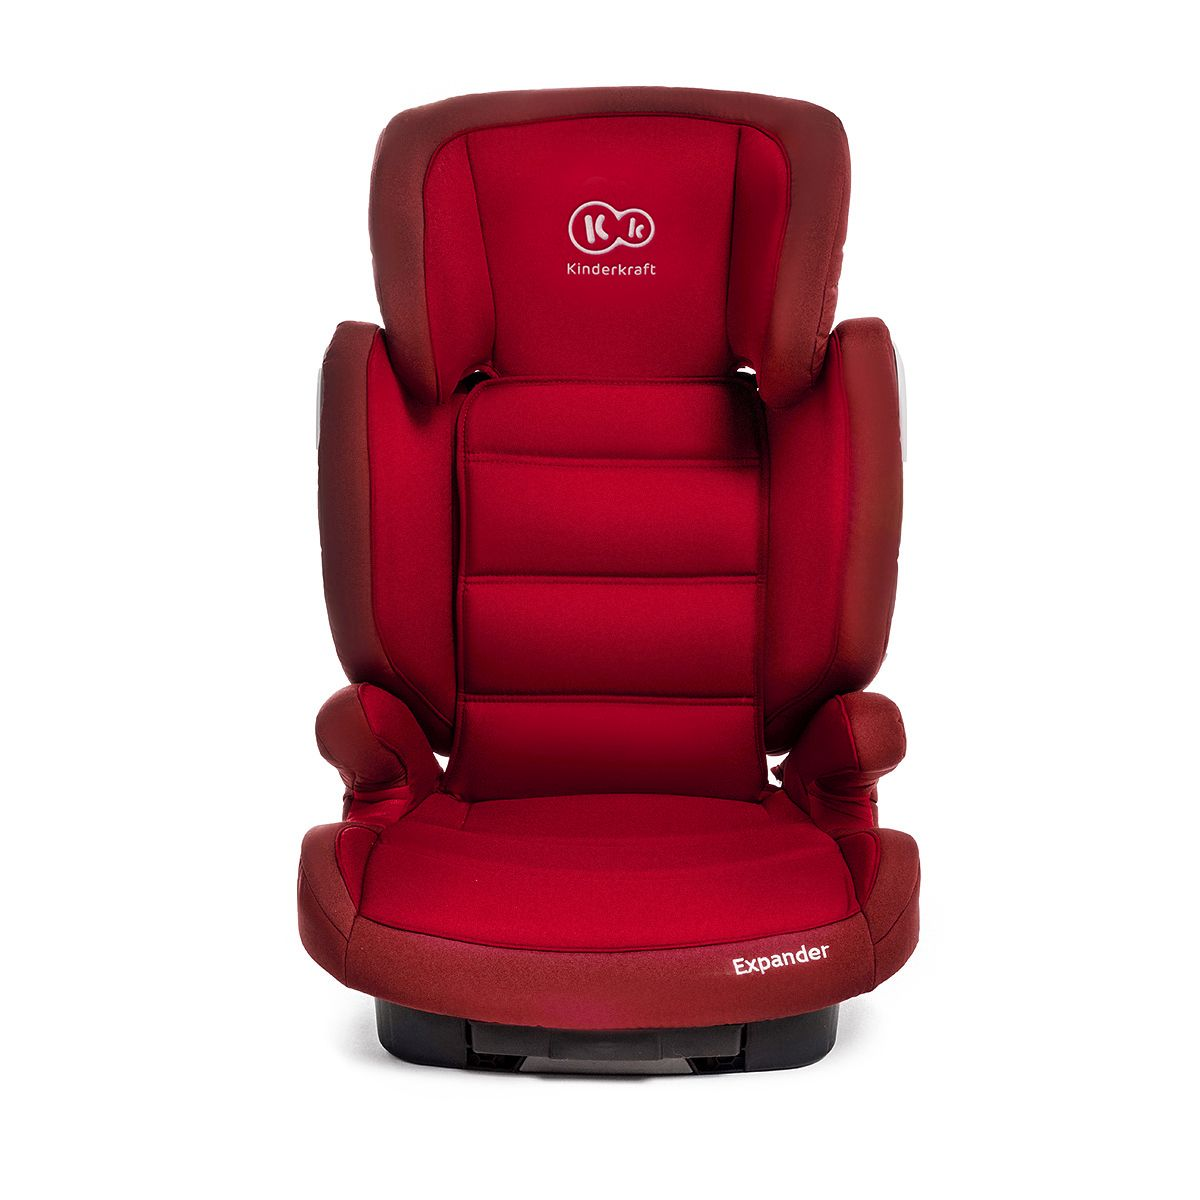 si ge voiture pour b b isofix chaise enfant de 15 36 kg groupe 2 3 expandeur ebay. Black Bedroom Furniture Sets. Home Design Ideas